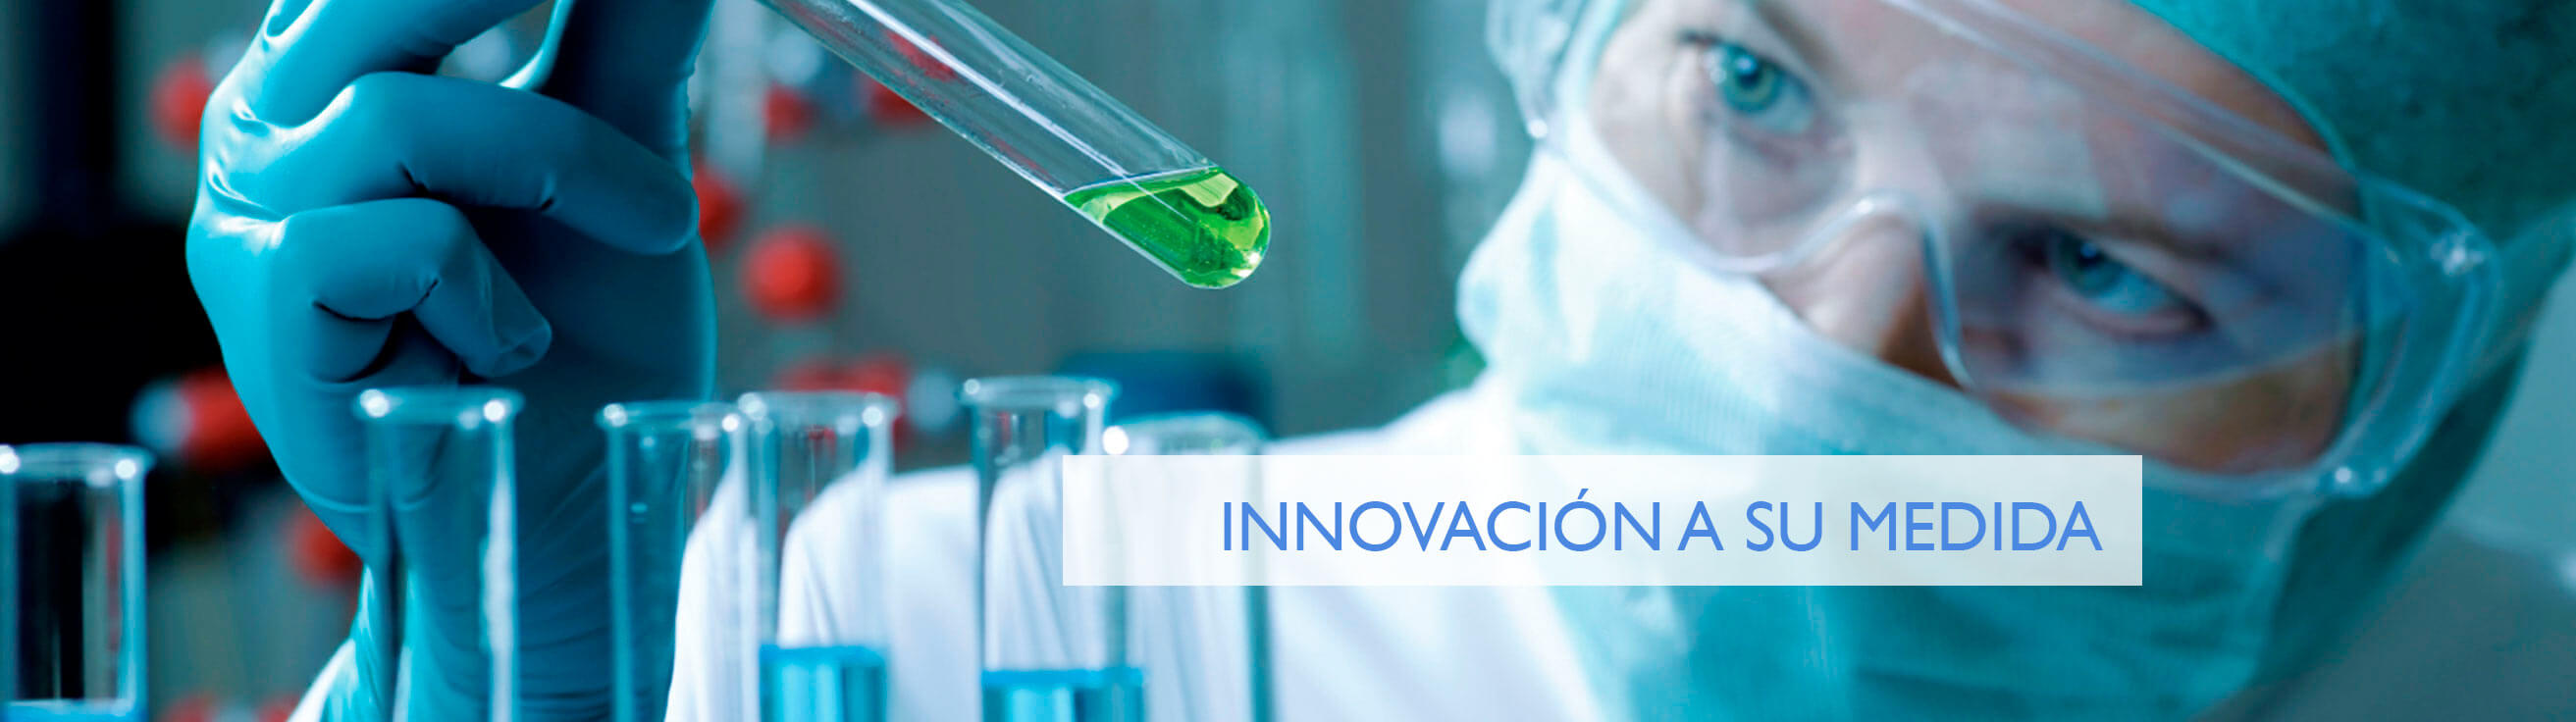 bioquigen-venta-reactivos-diagnostico-In-Vitro-colombia-1